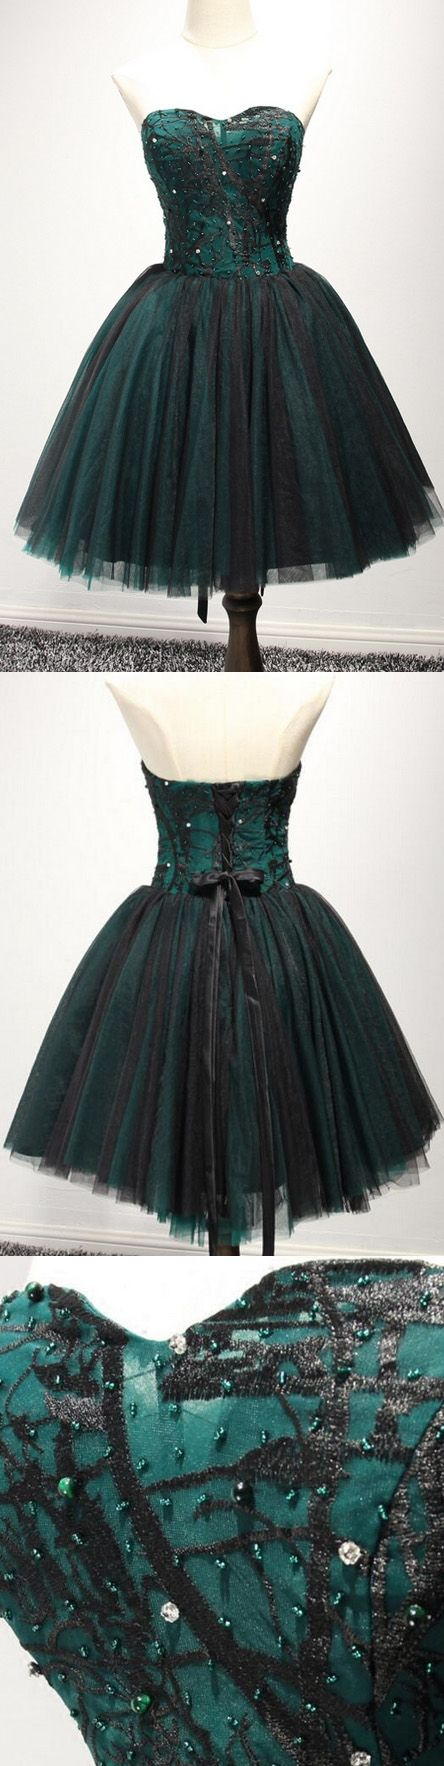 Cheap Prom Dresses, Short Prom Dresses, Prom Dresses Cheap, Green Prom Dresses, Cheap Short Prom Dresses, Homecoming Dresses Short, Cheap Short Homecoming Dresses, Sweetheart Prom Dresses, Green Homecoming Dresses, Cheap Homecoming Dresses, Homecoming Dresses Cheap, Short Homecoming Dresses, A-line/Princess Homecoming Dresses, Dark Green Prom Dresses, Short Party Dresses, Short Dark Green Party Dresses With Beaded/Beading Knee-length Sweetheart Sale Online